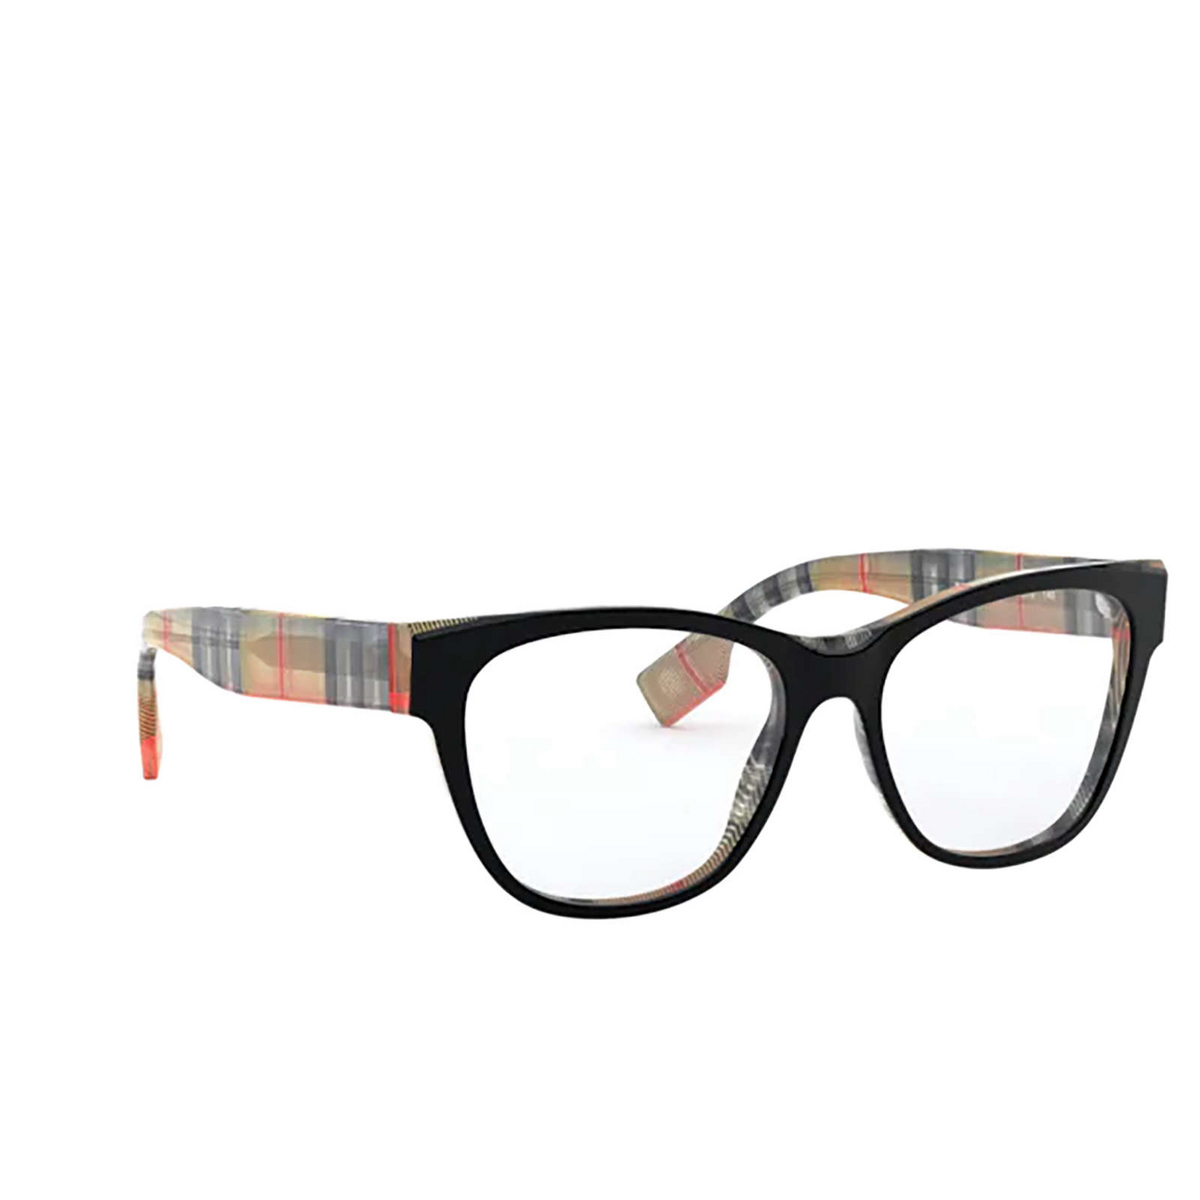 Burberry® Square Eyeglasses: BE2301 color Top Black On Vintage Check 3806 - three-quarters view.